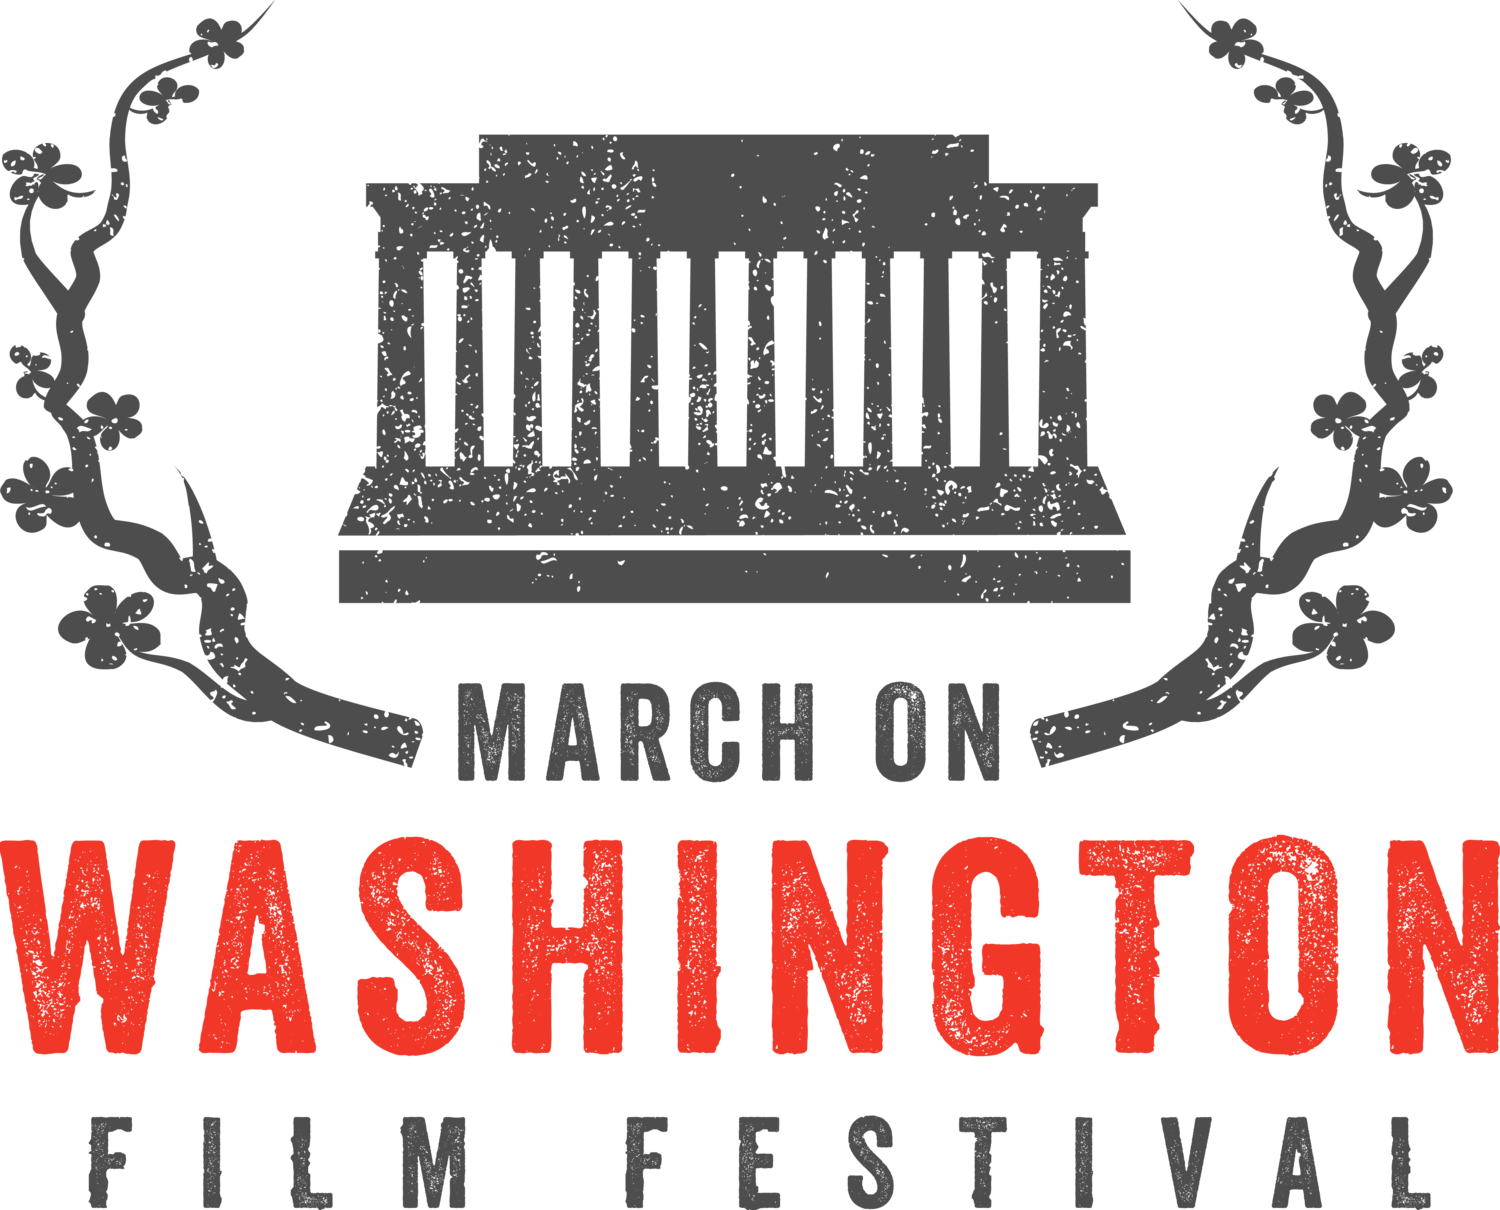 March on washington festival. Newsletter clipart chronicle